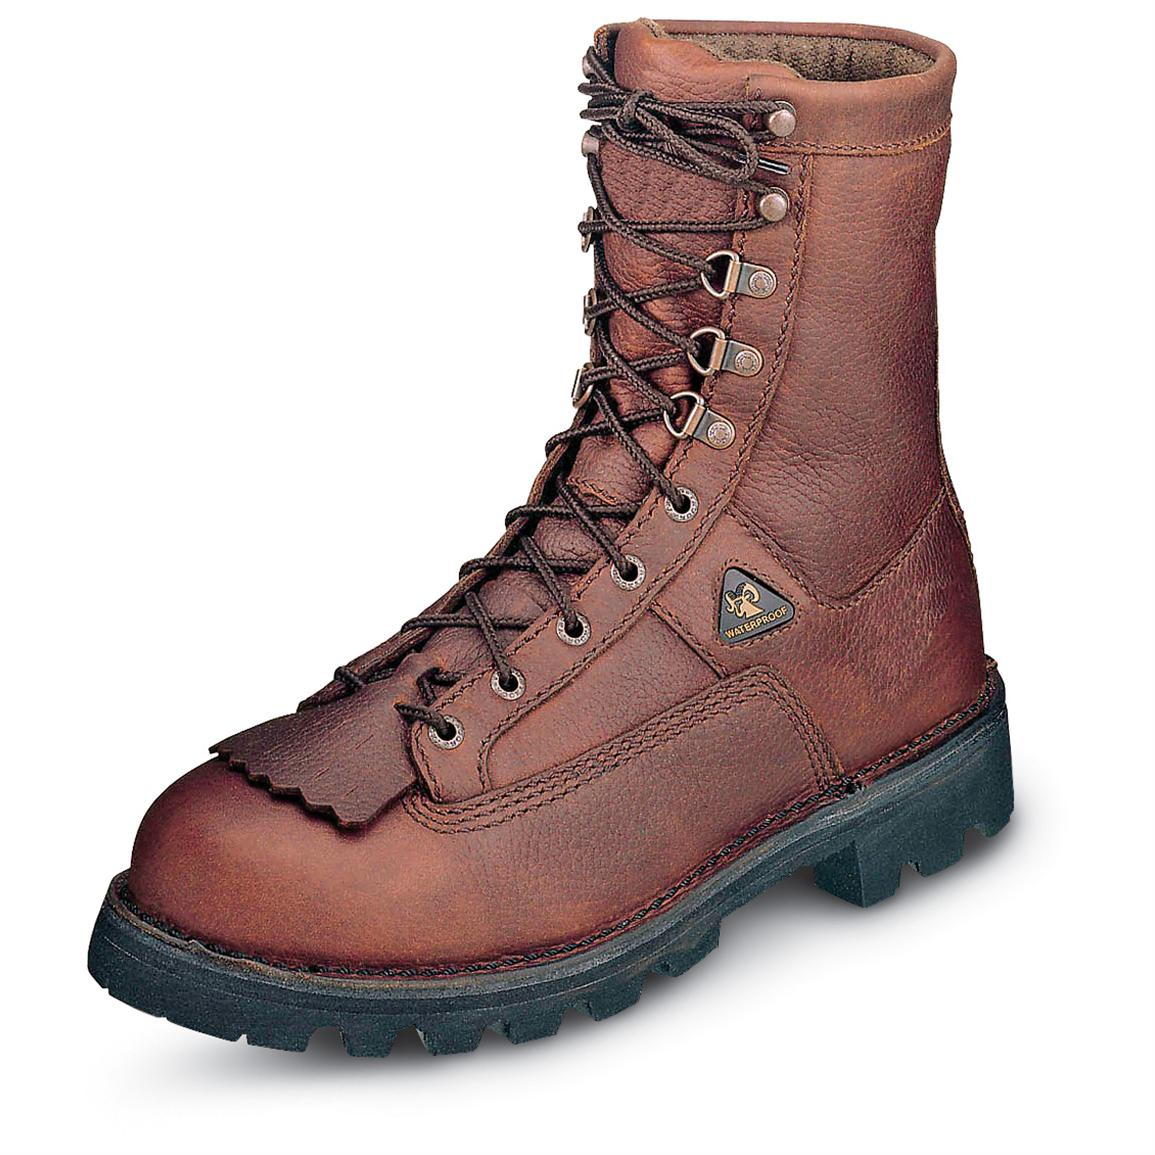 Rocky Portland Waterproof 400 gram Thinsulate Ultra Insulation Steel Toe Boots, Brown